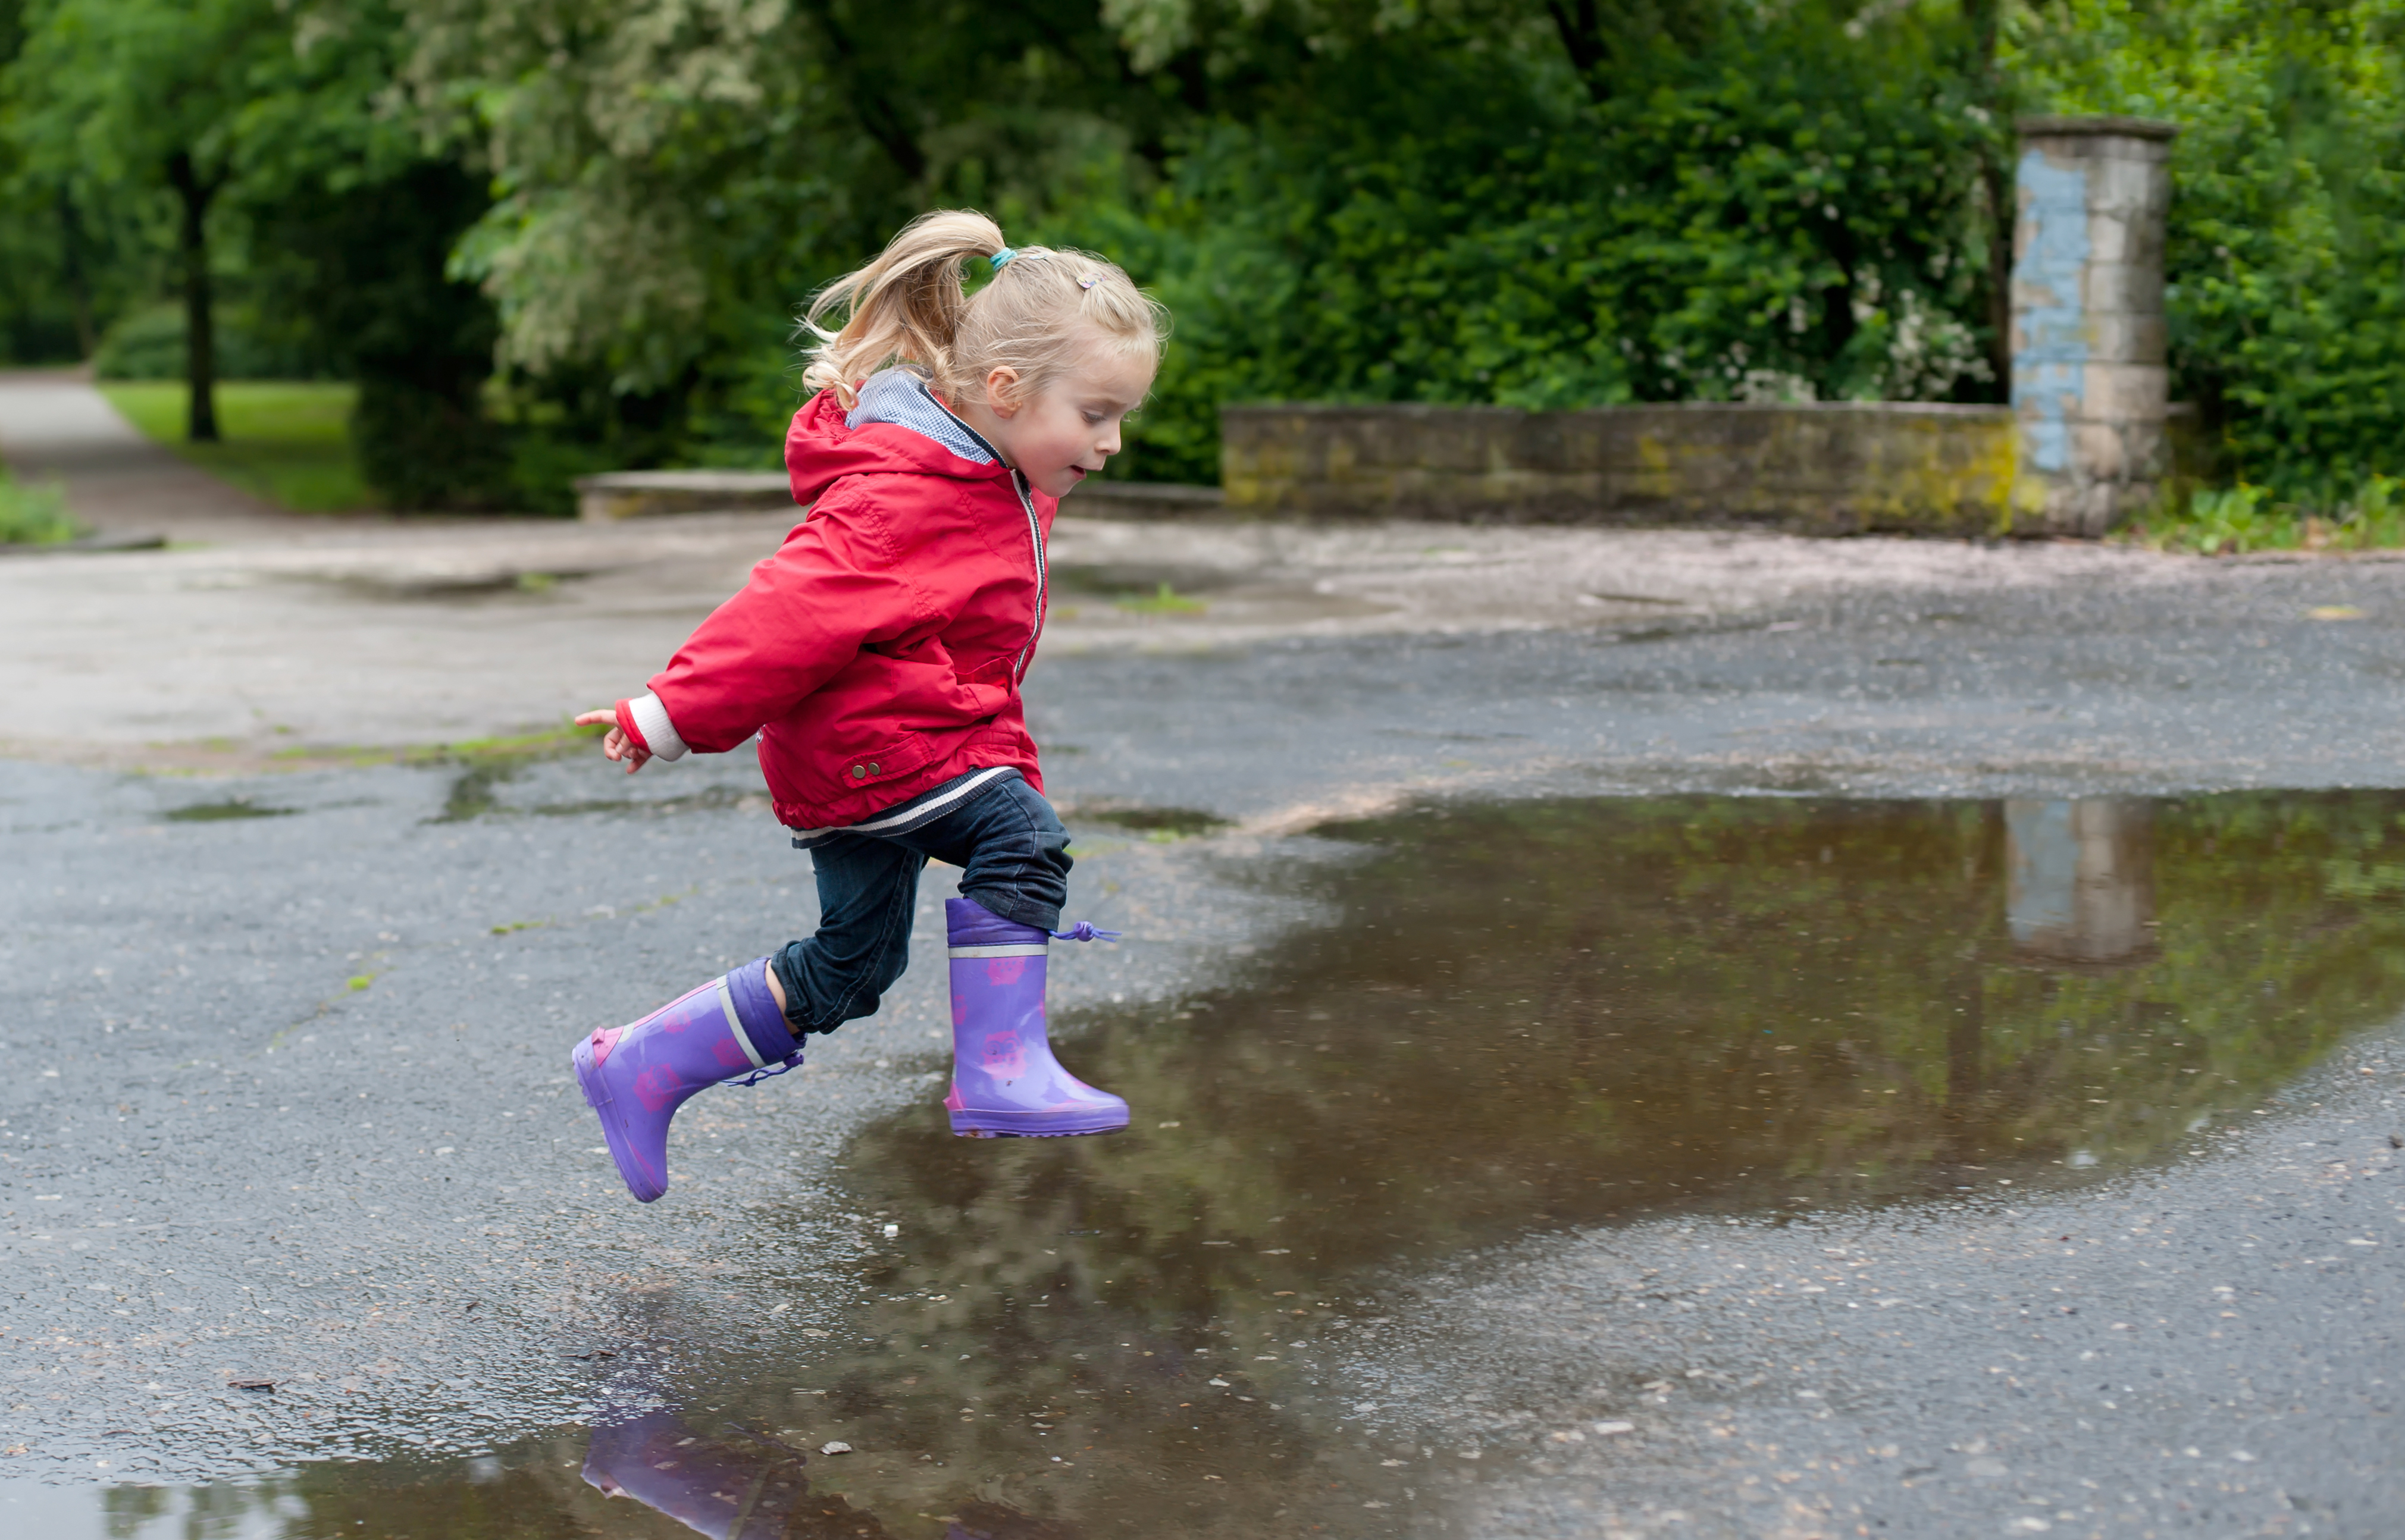 Kid jumping in the puddle in the rain